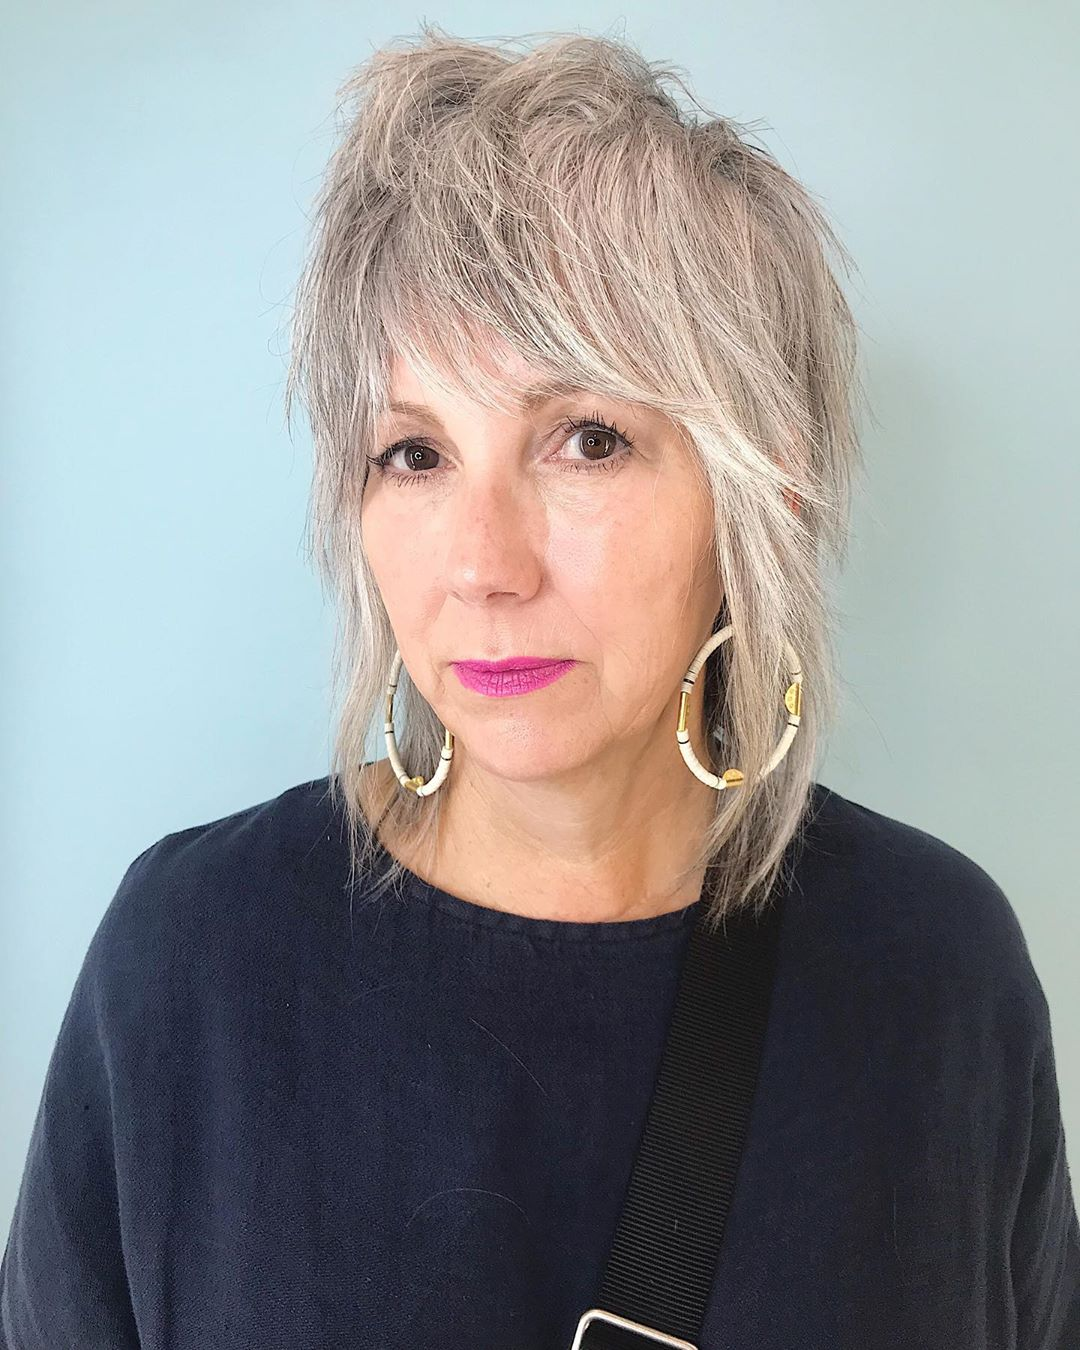 Long Shaggy Hairstyles For Fine Hair Over 50 - 60 ...